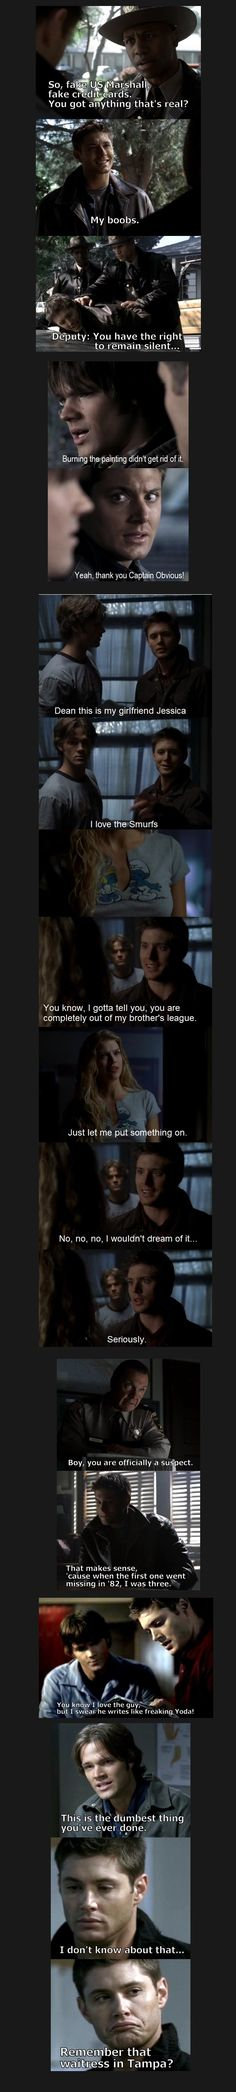 Dean Winchester Quotes. He is an eloquent man indeed.